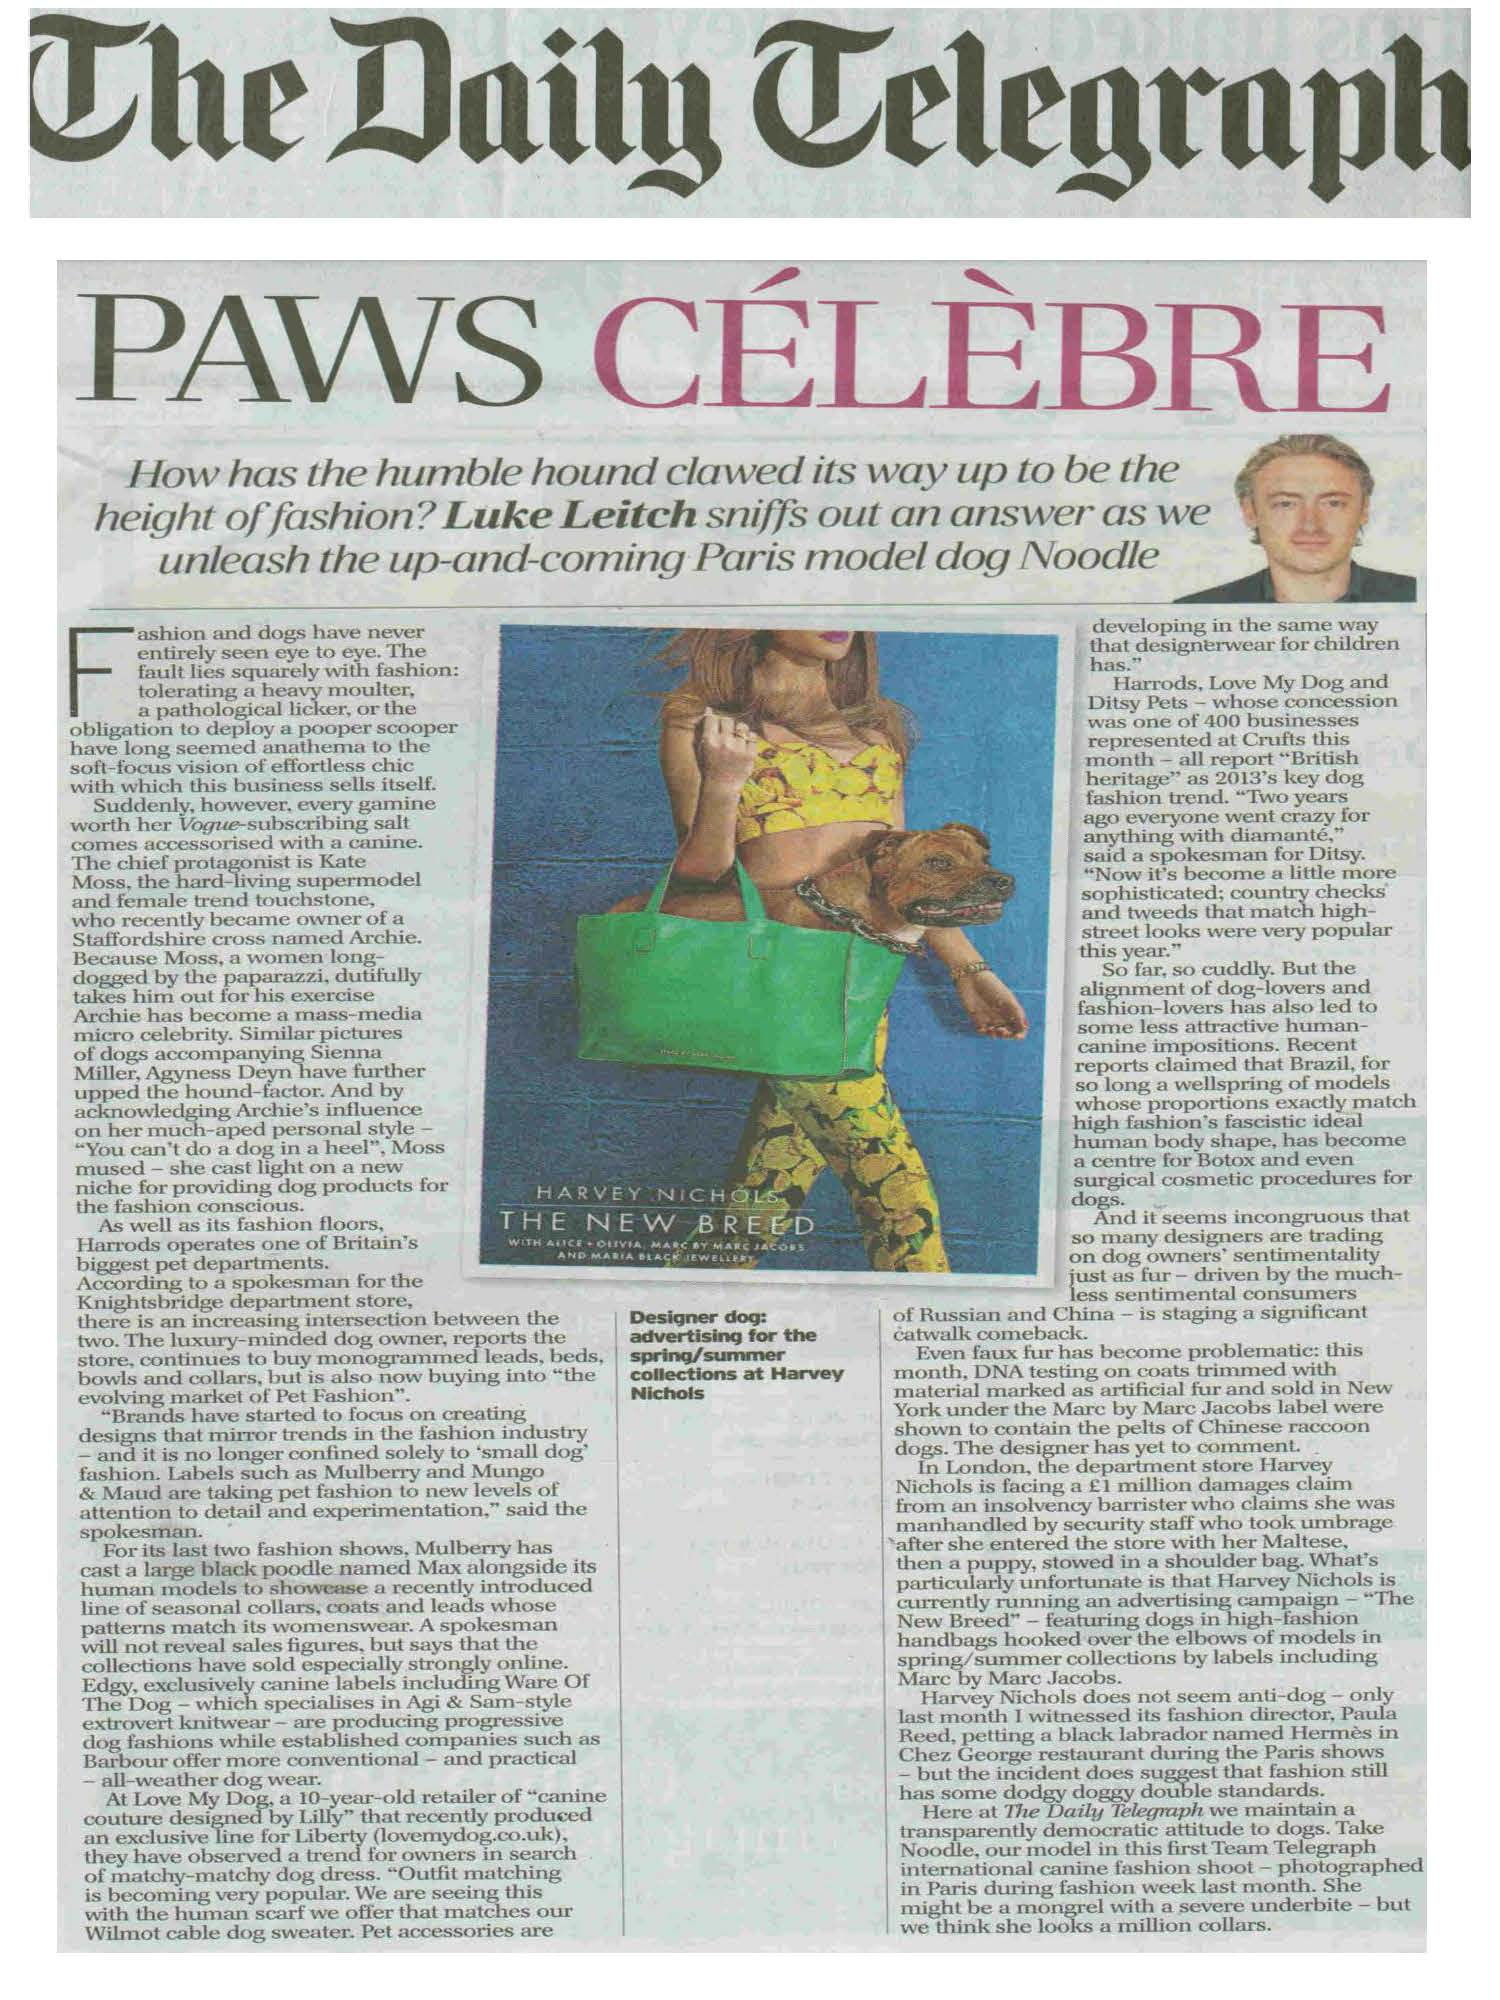 dog, dogs, style, magazine, press, editorial, daily telegraph, paw, celebrity